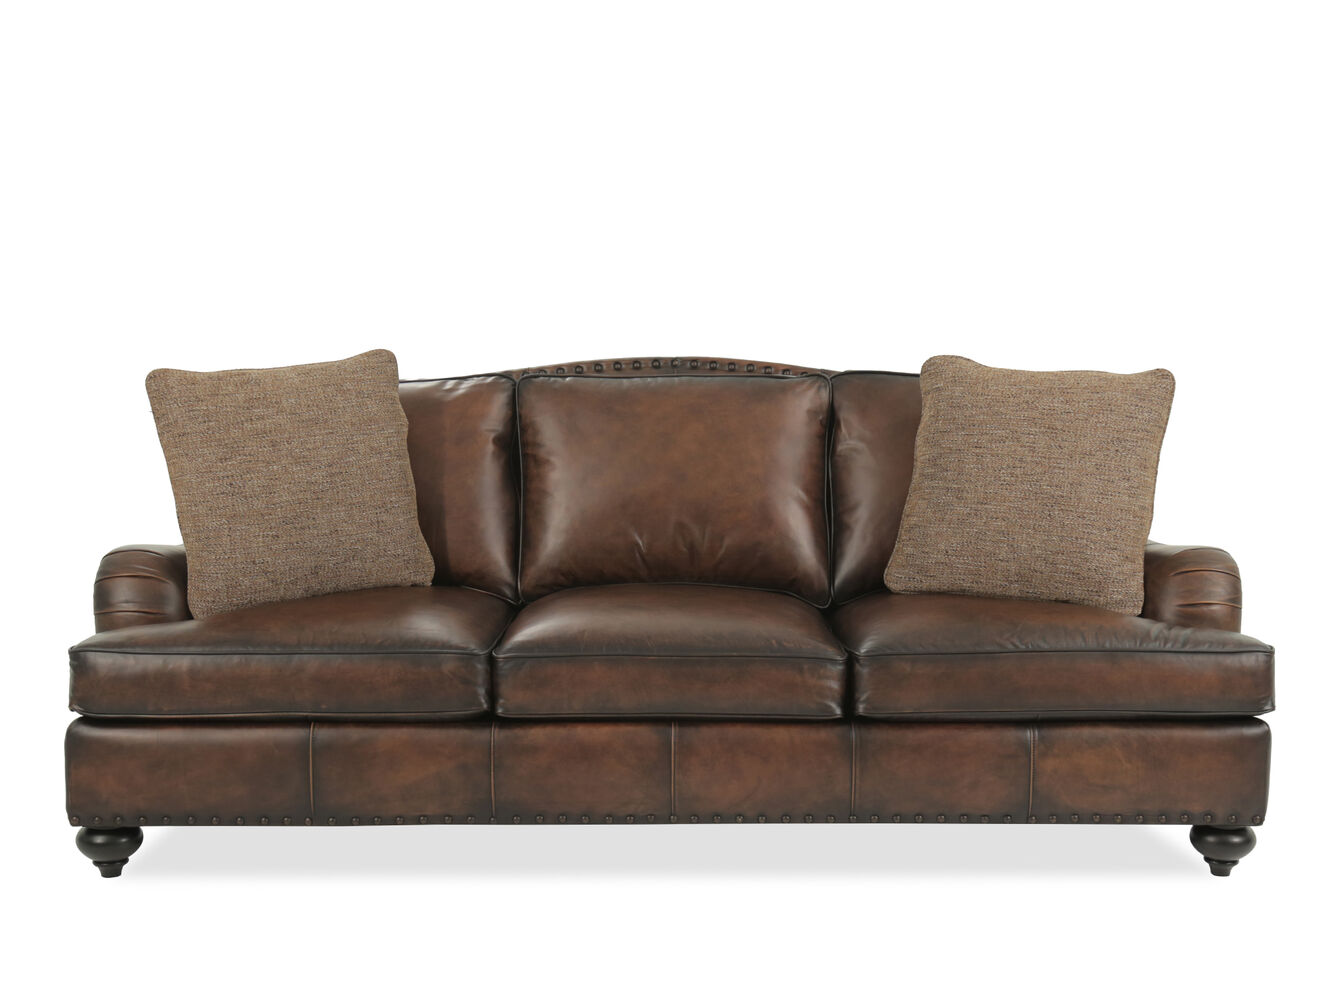 Bernhardt Leather Sofa Care Inspiring Bernhardt Leather Sofa Design Van Gogh Leather True